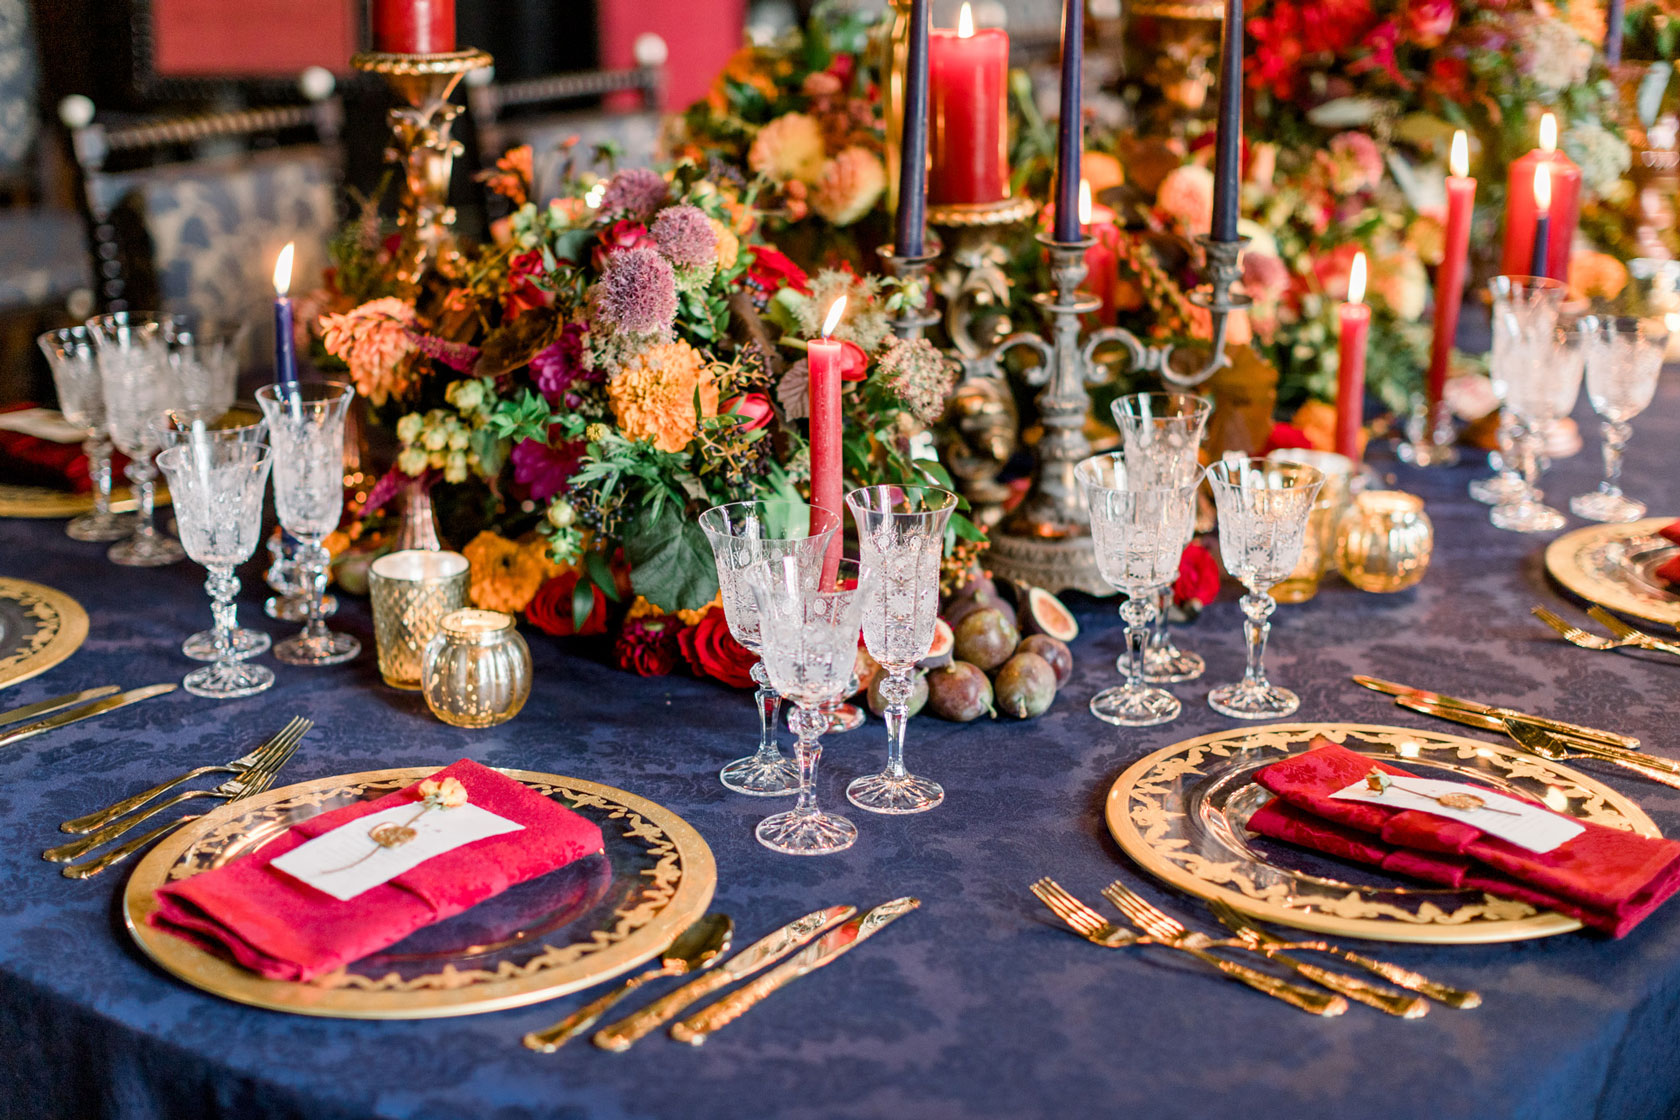 navy linen, gold charger plates and cutlery, red napkins and delicate crystal glasses